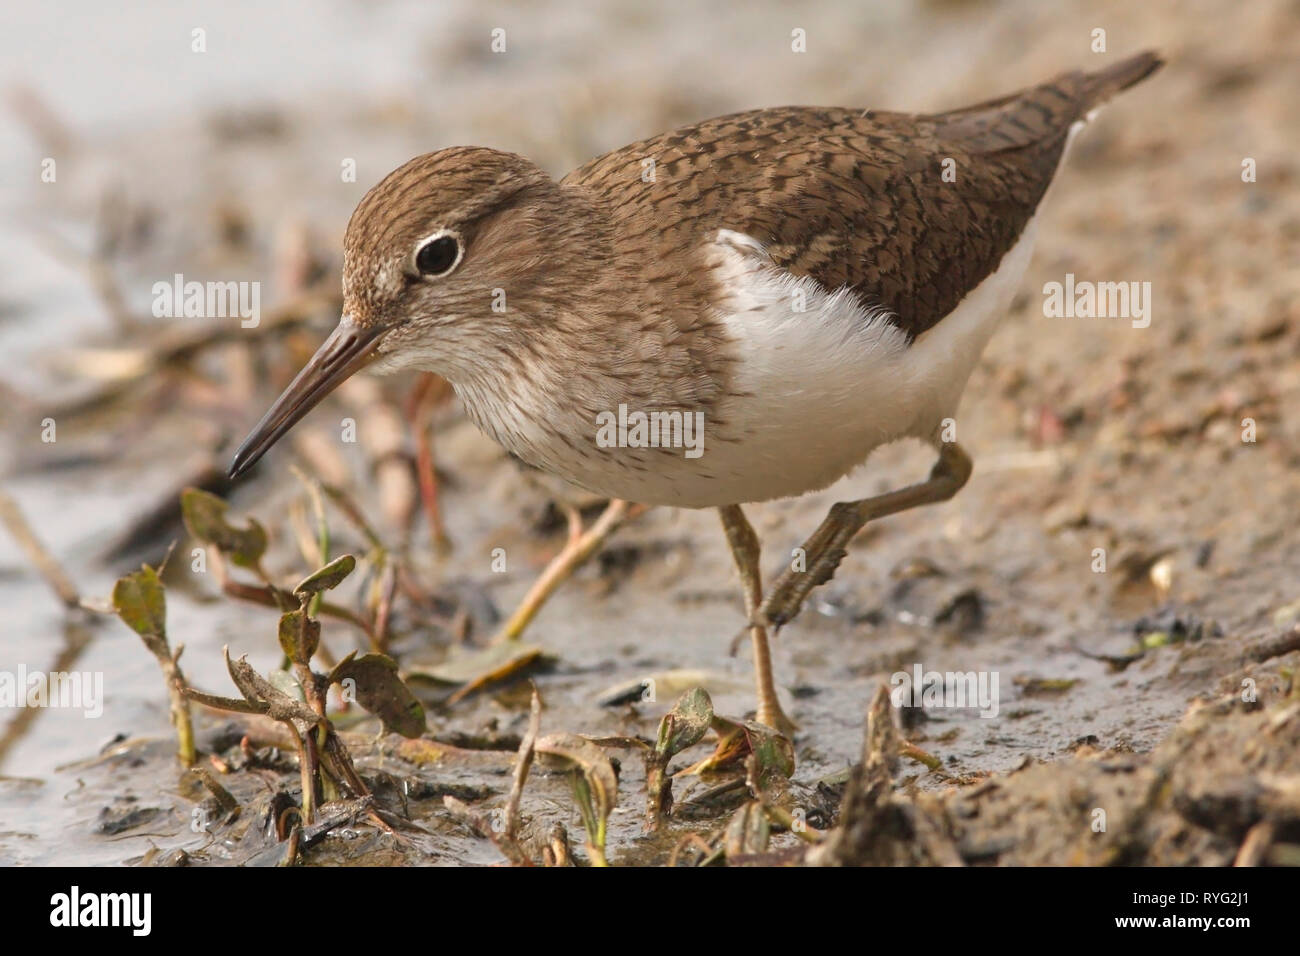 common-sandpiper-actitis-hypoleucos-scotland-uk-RYG2J1.jpg